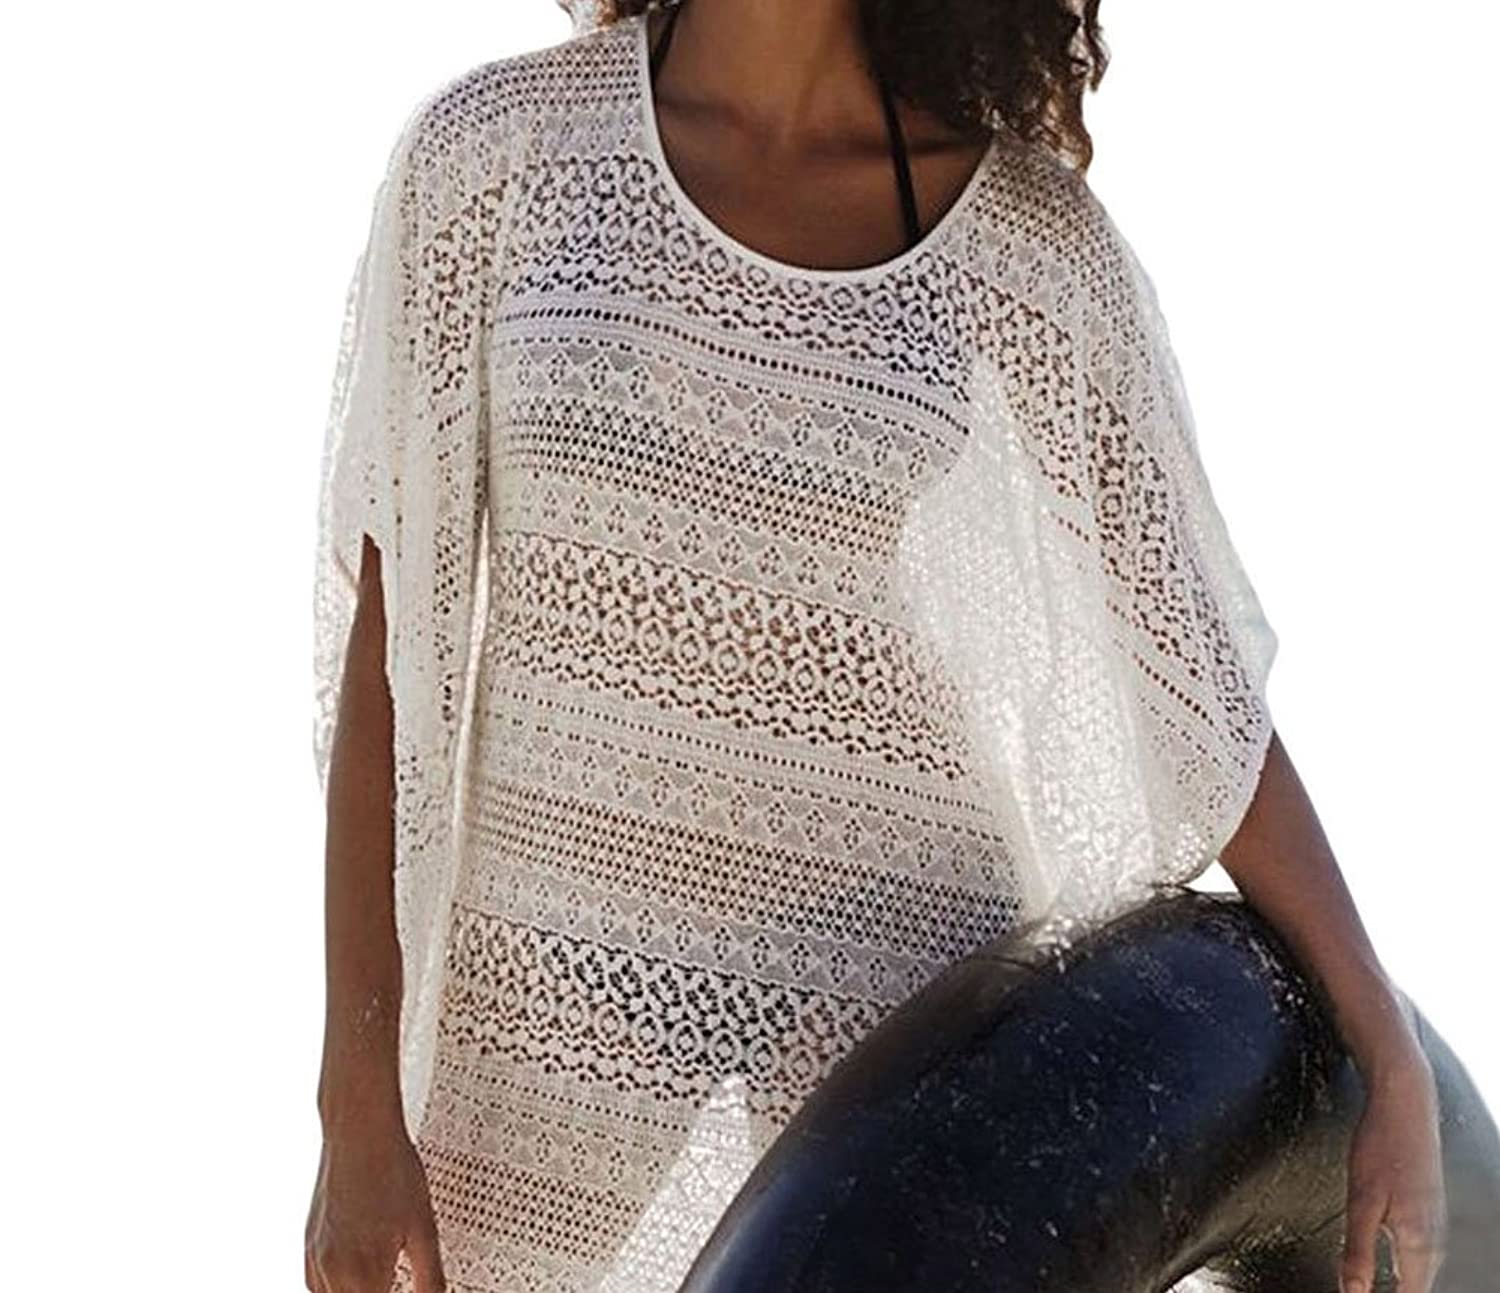 Bling-Bling White Lace Hollow-out Beach Cover-up Dress with Fringe